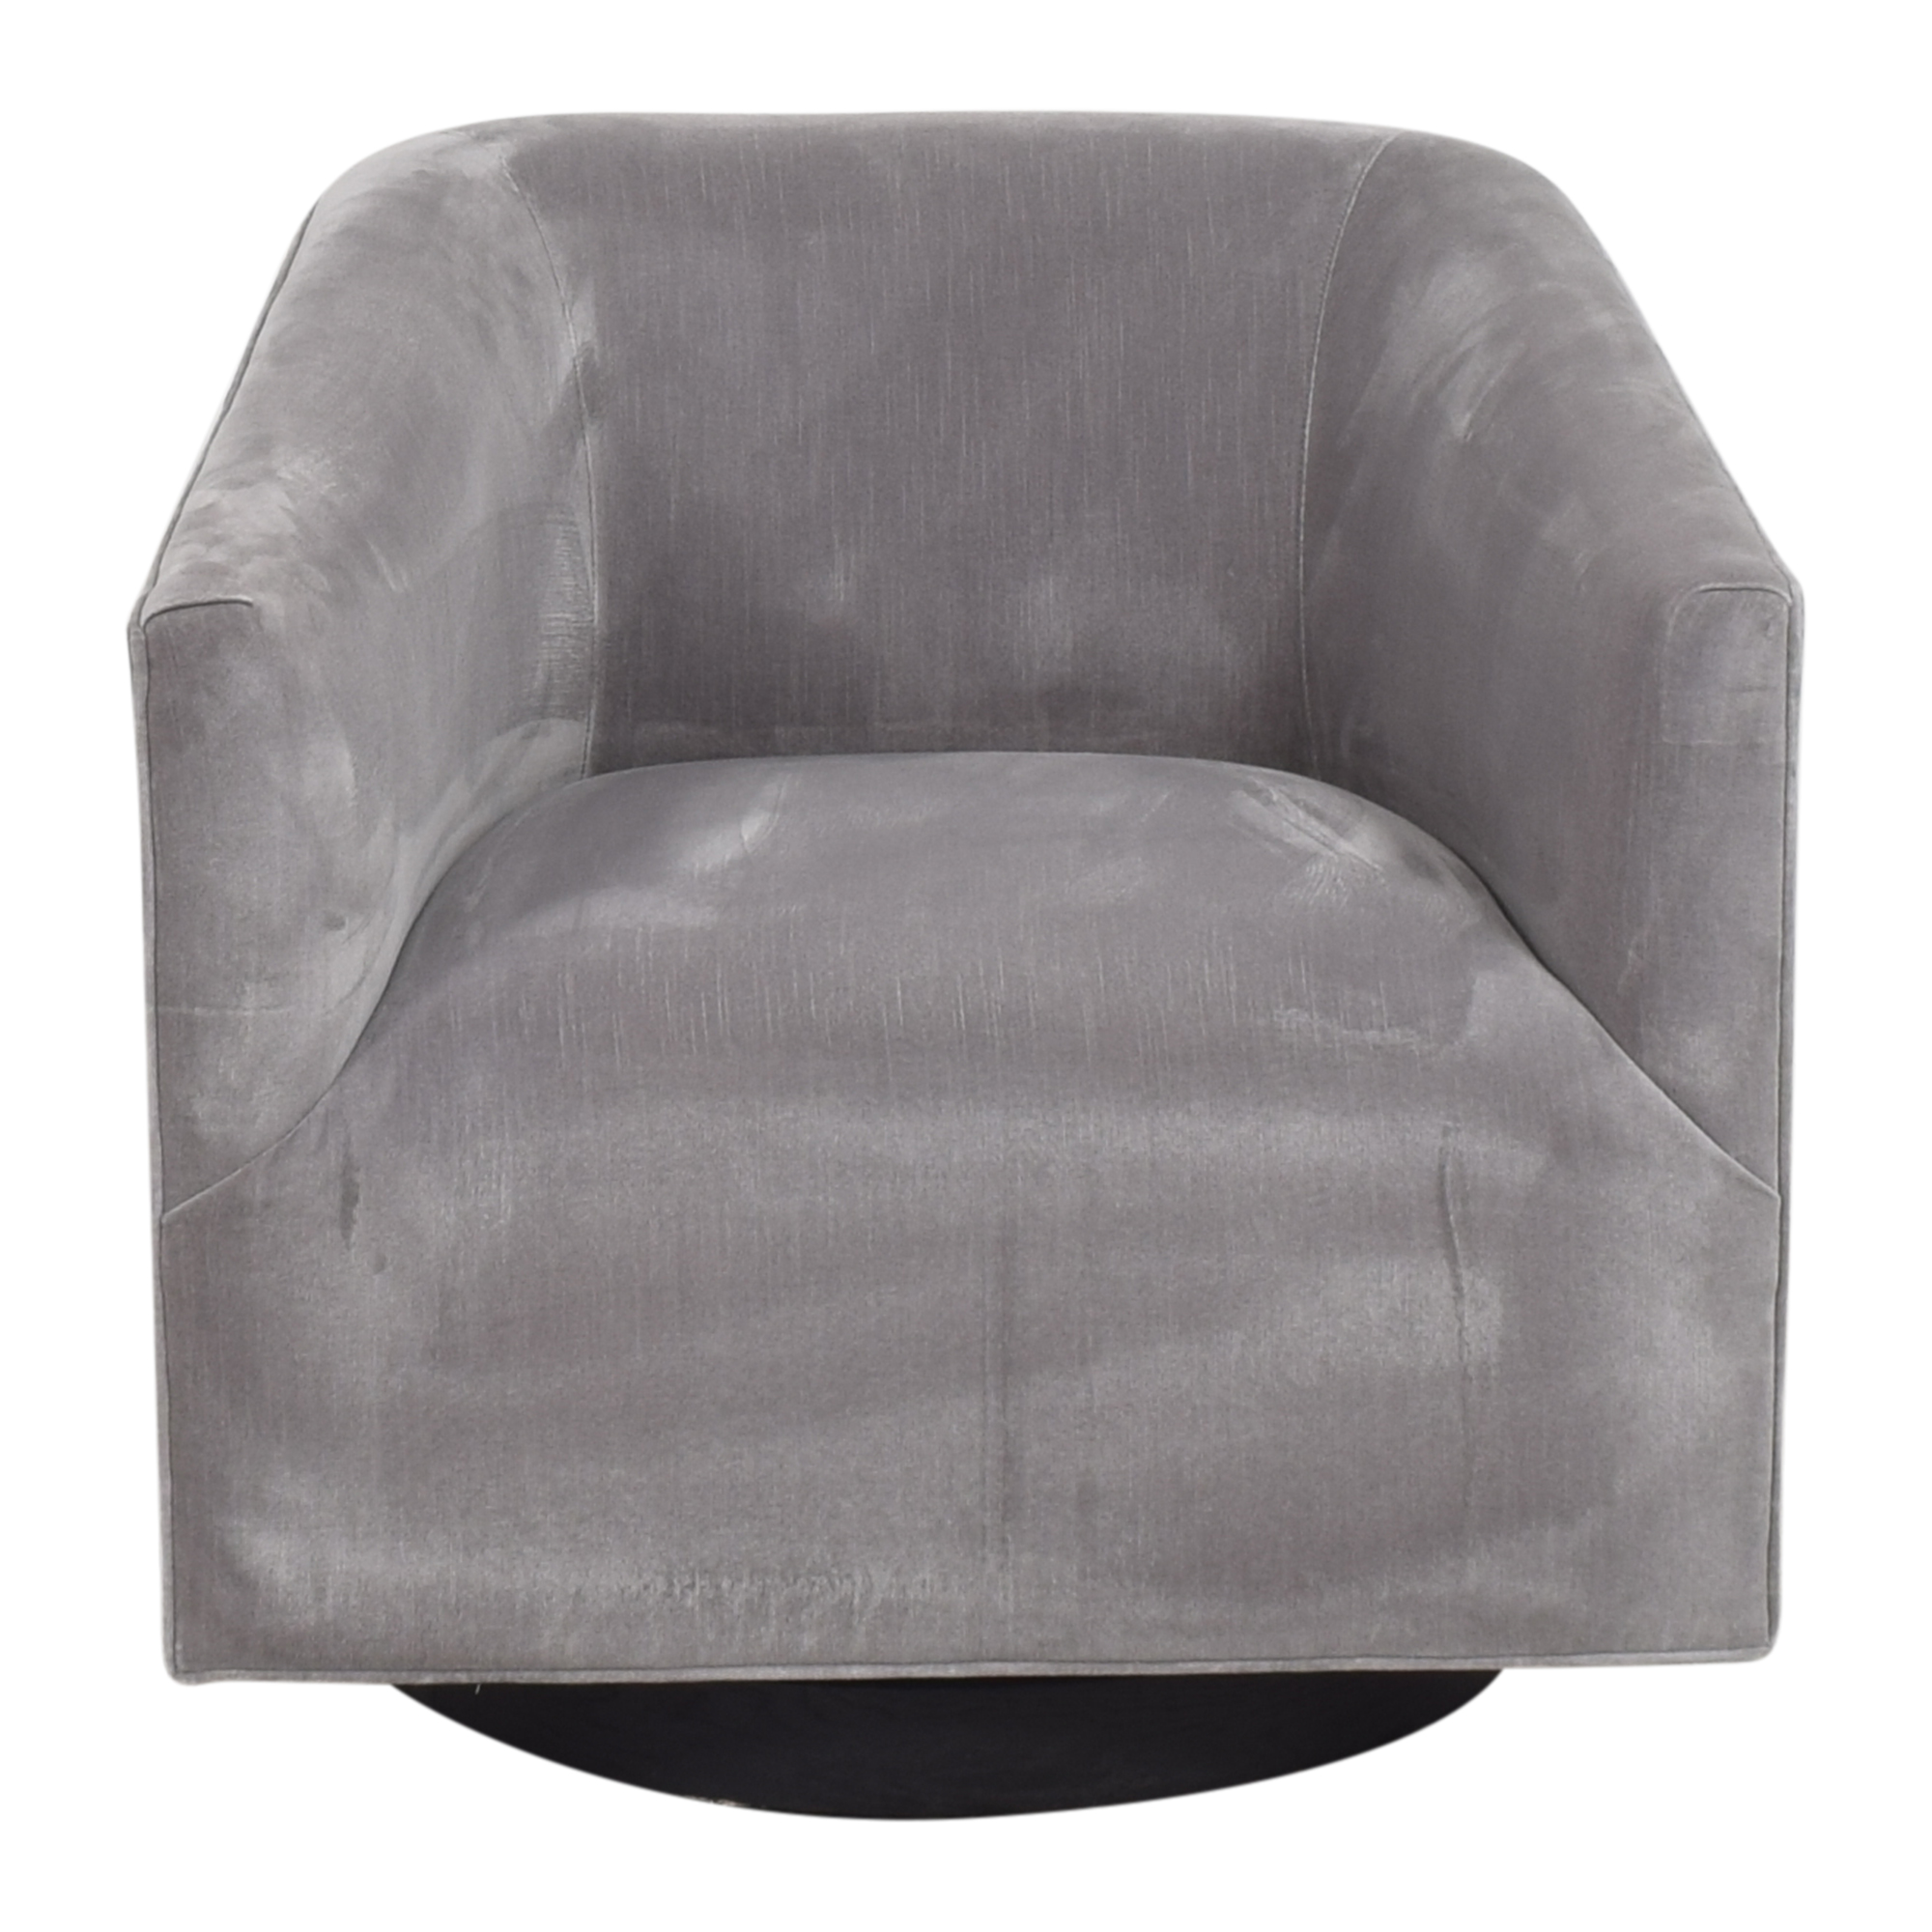 Restoration Hardware Restoration Hardware 1950s Italian Shelter Arm Swivel Chair second hand